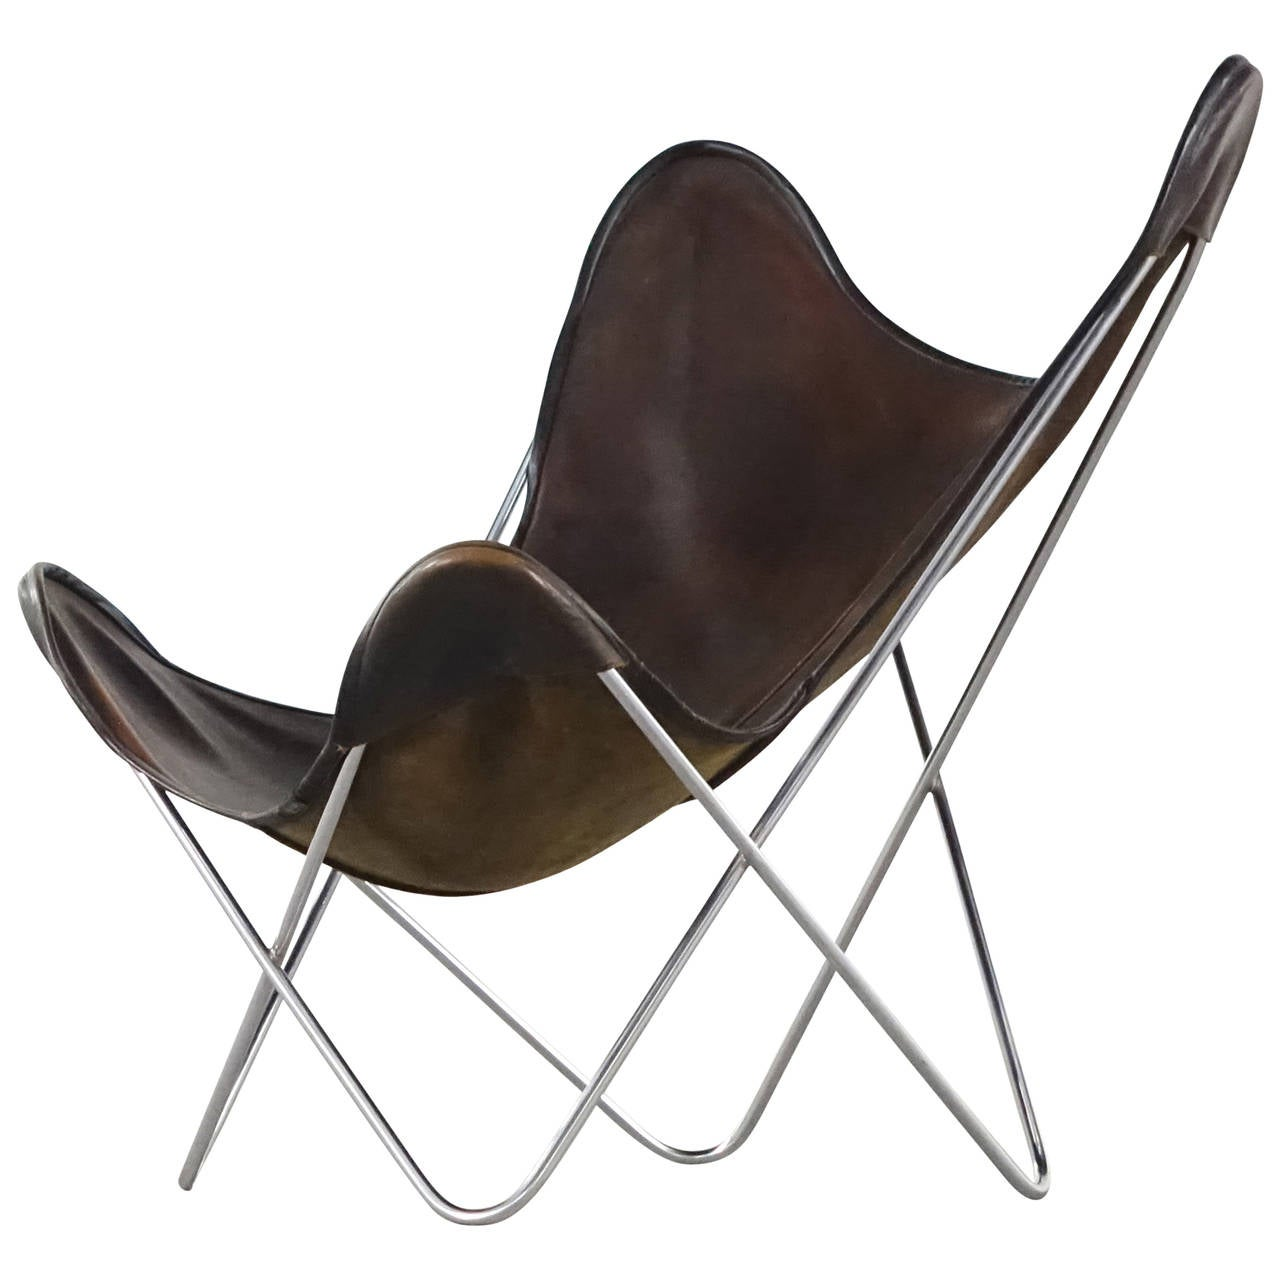 jorge ferrari hardoy butterfly sling chair for knoll. Black Bedroom Furniture Sets. Home Design Ideas